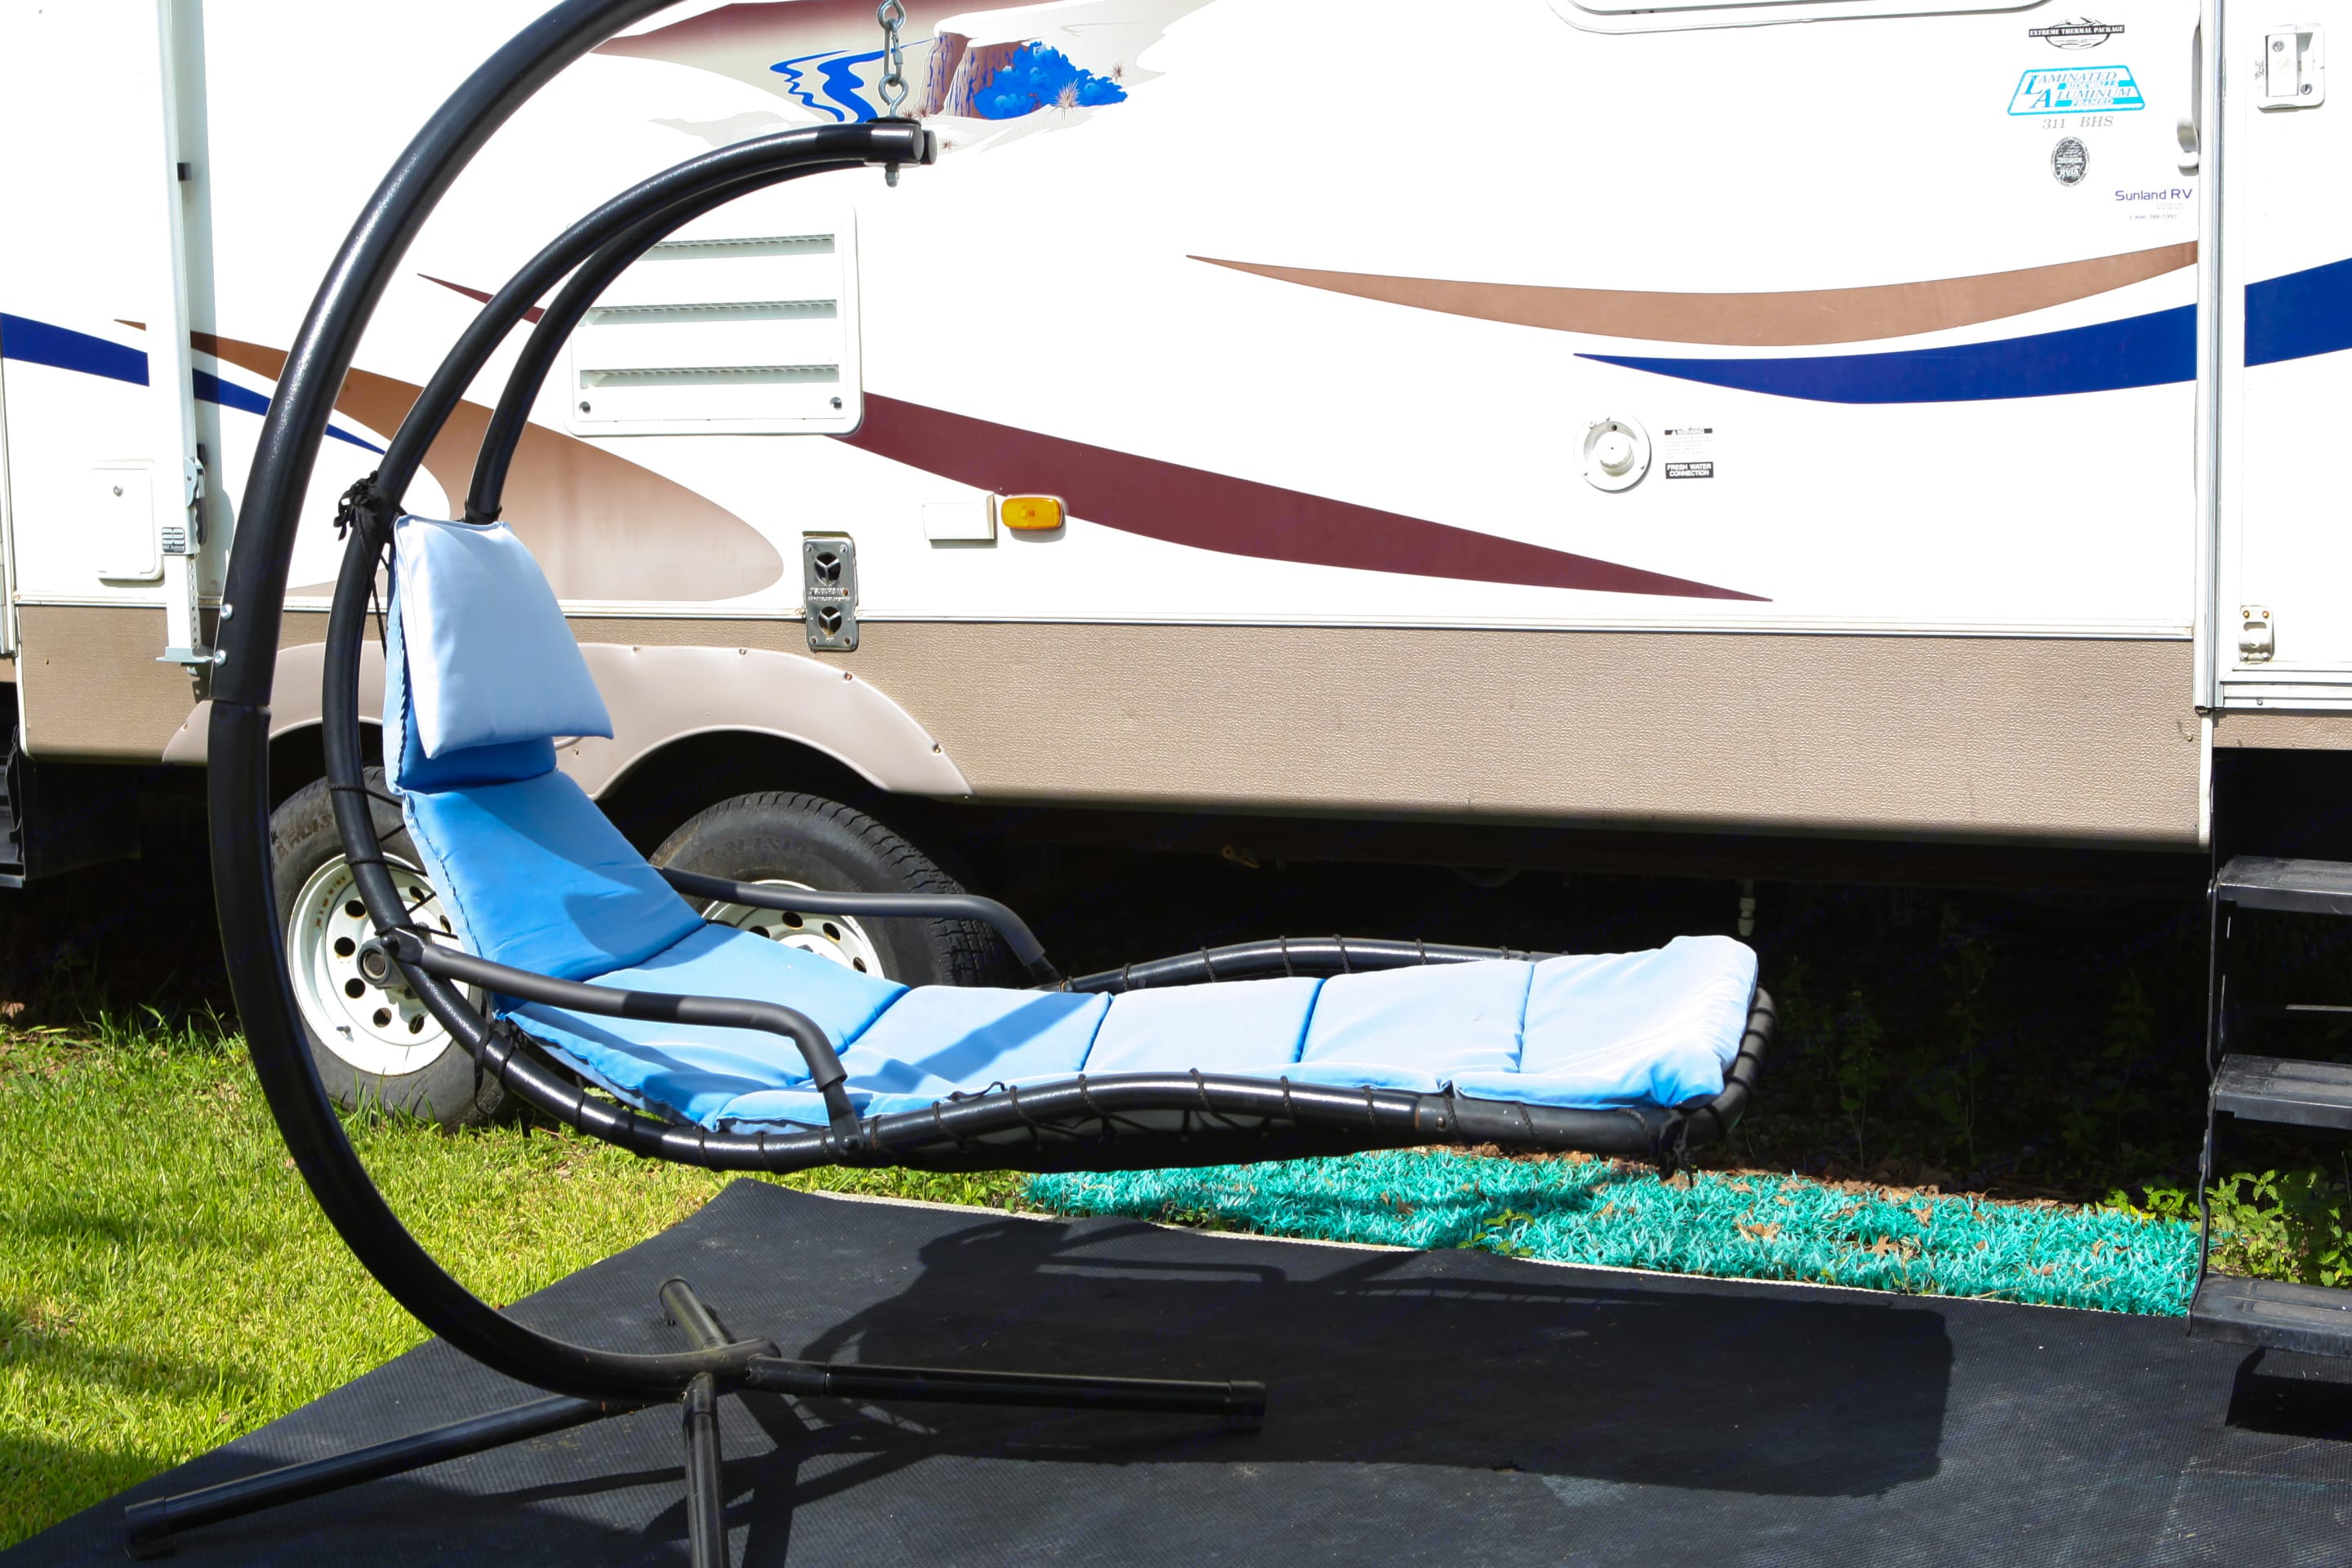 Aside Camper Lounger for those lazy moments. Keystone Sprinter 2007